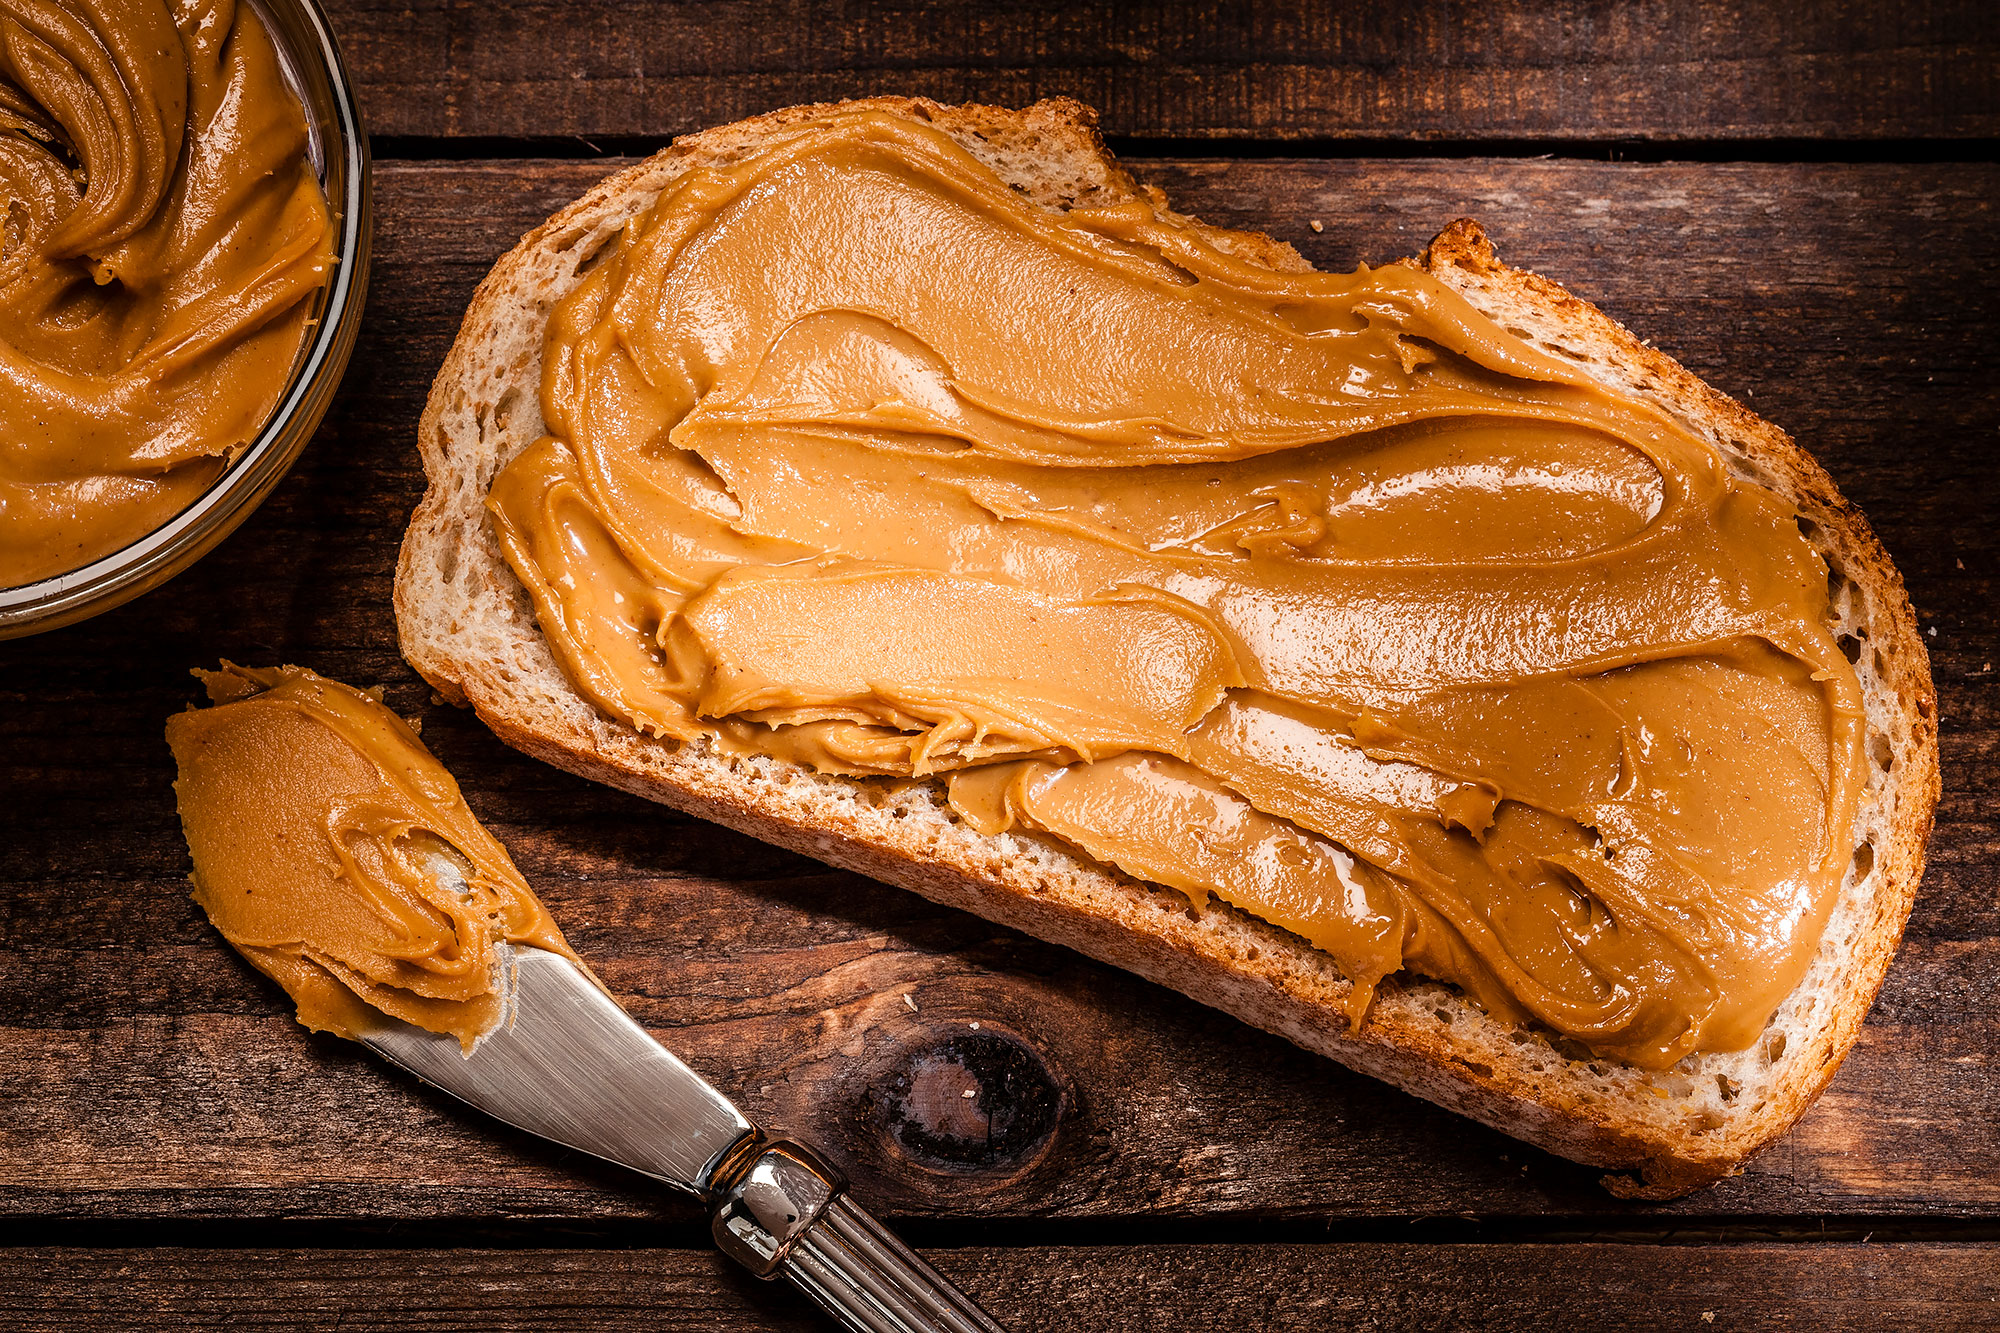 Toast with peanut butter shot on rustic wooden table